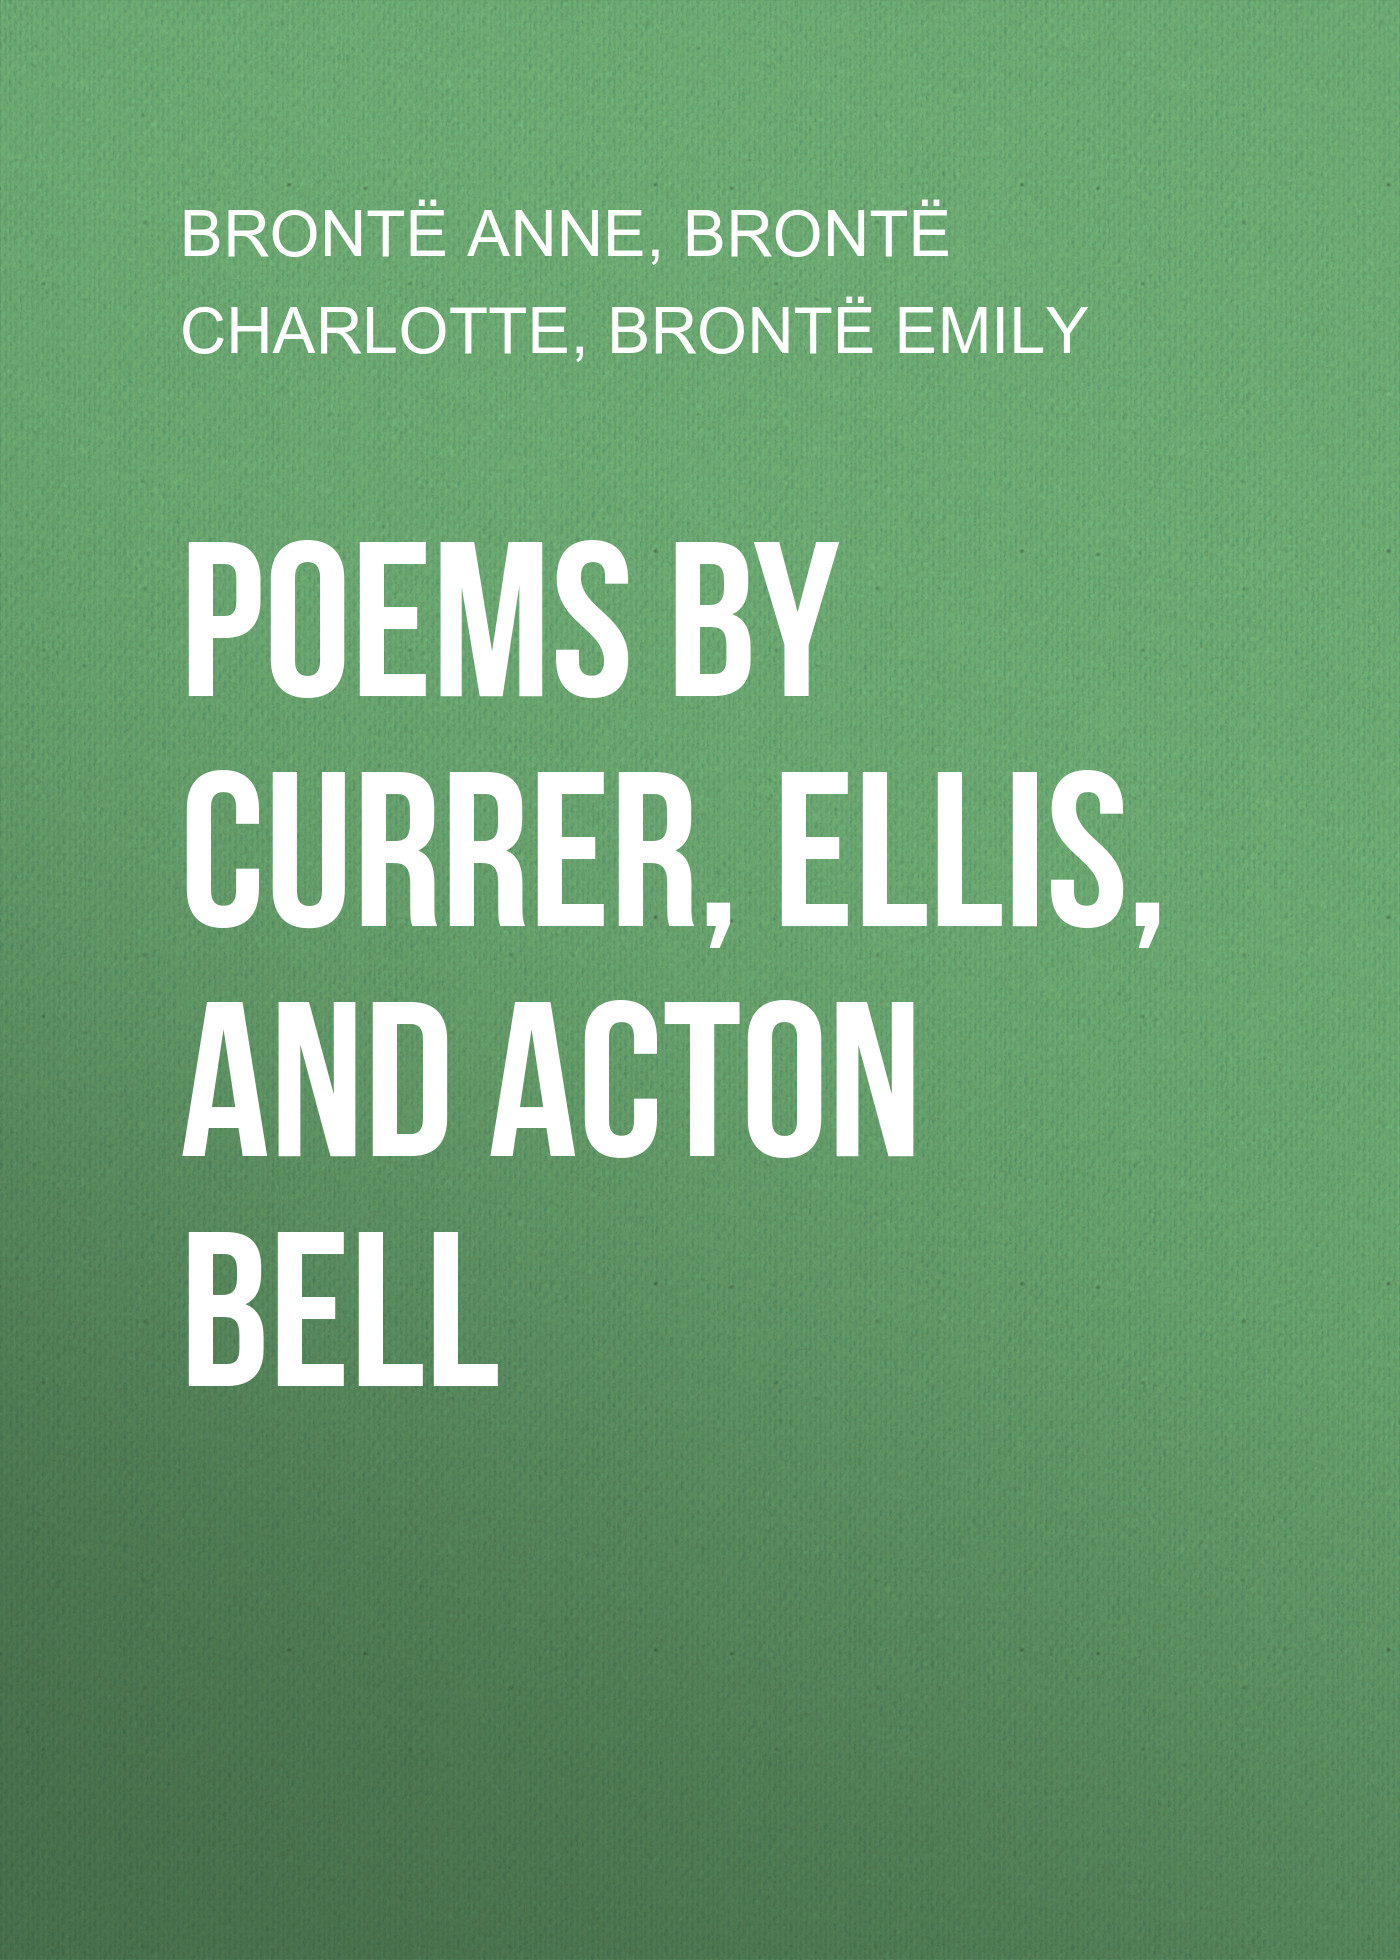 poems by currer ellis and acton bell